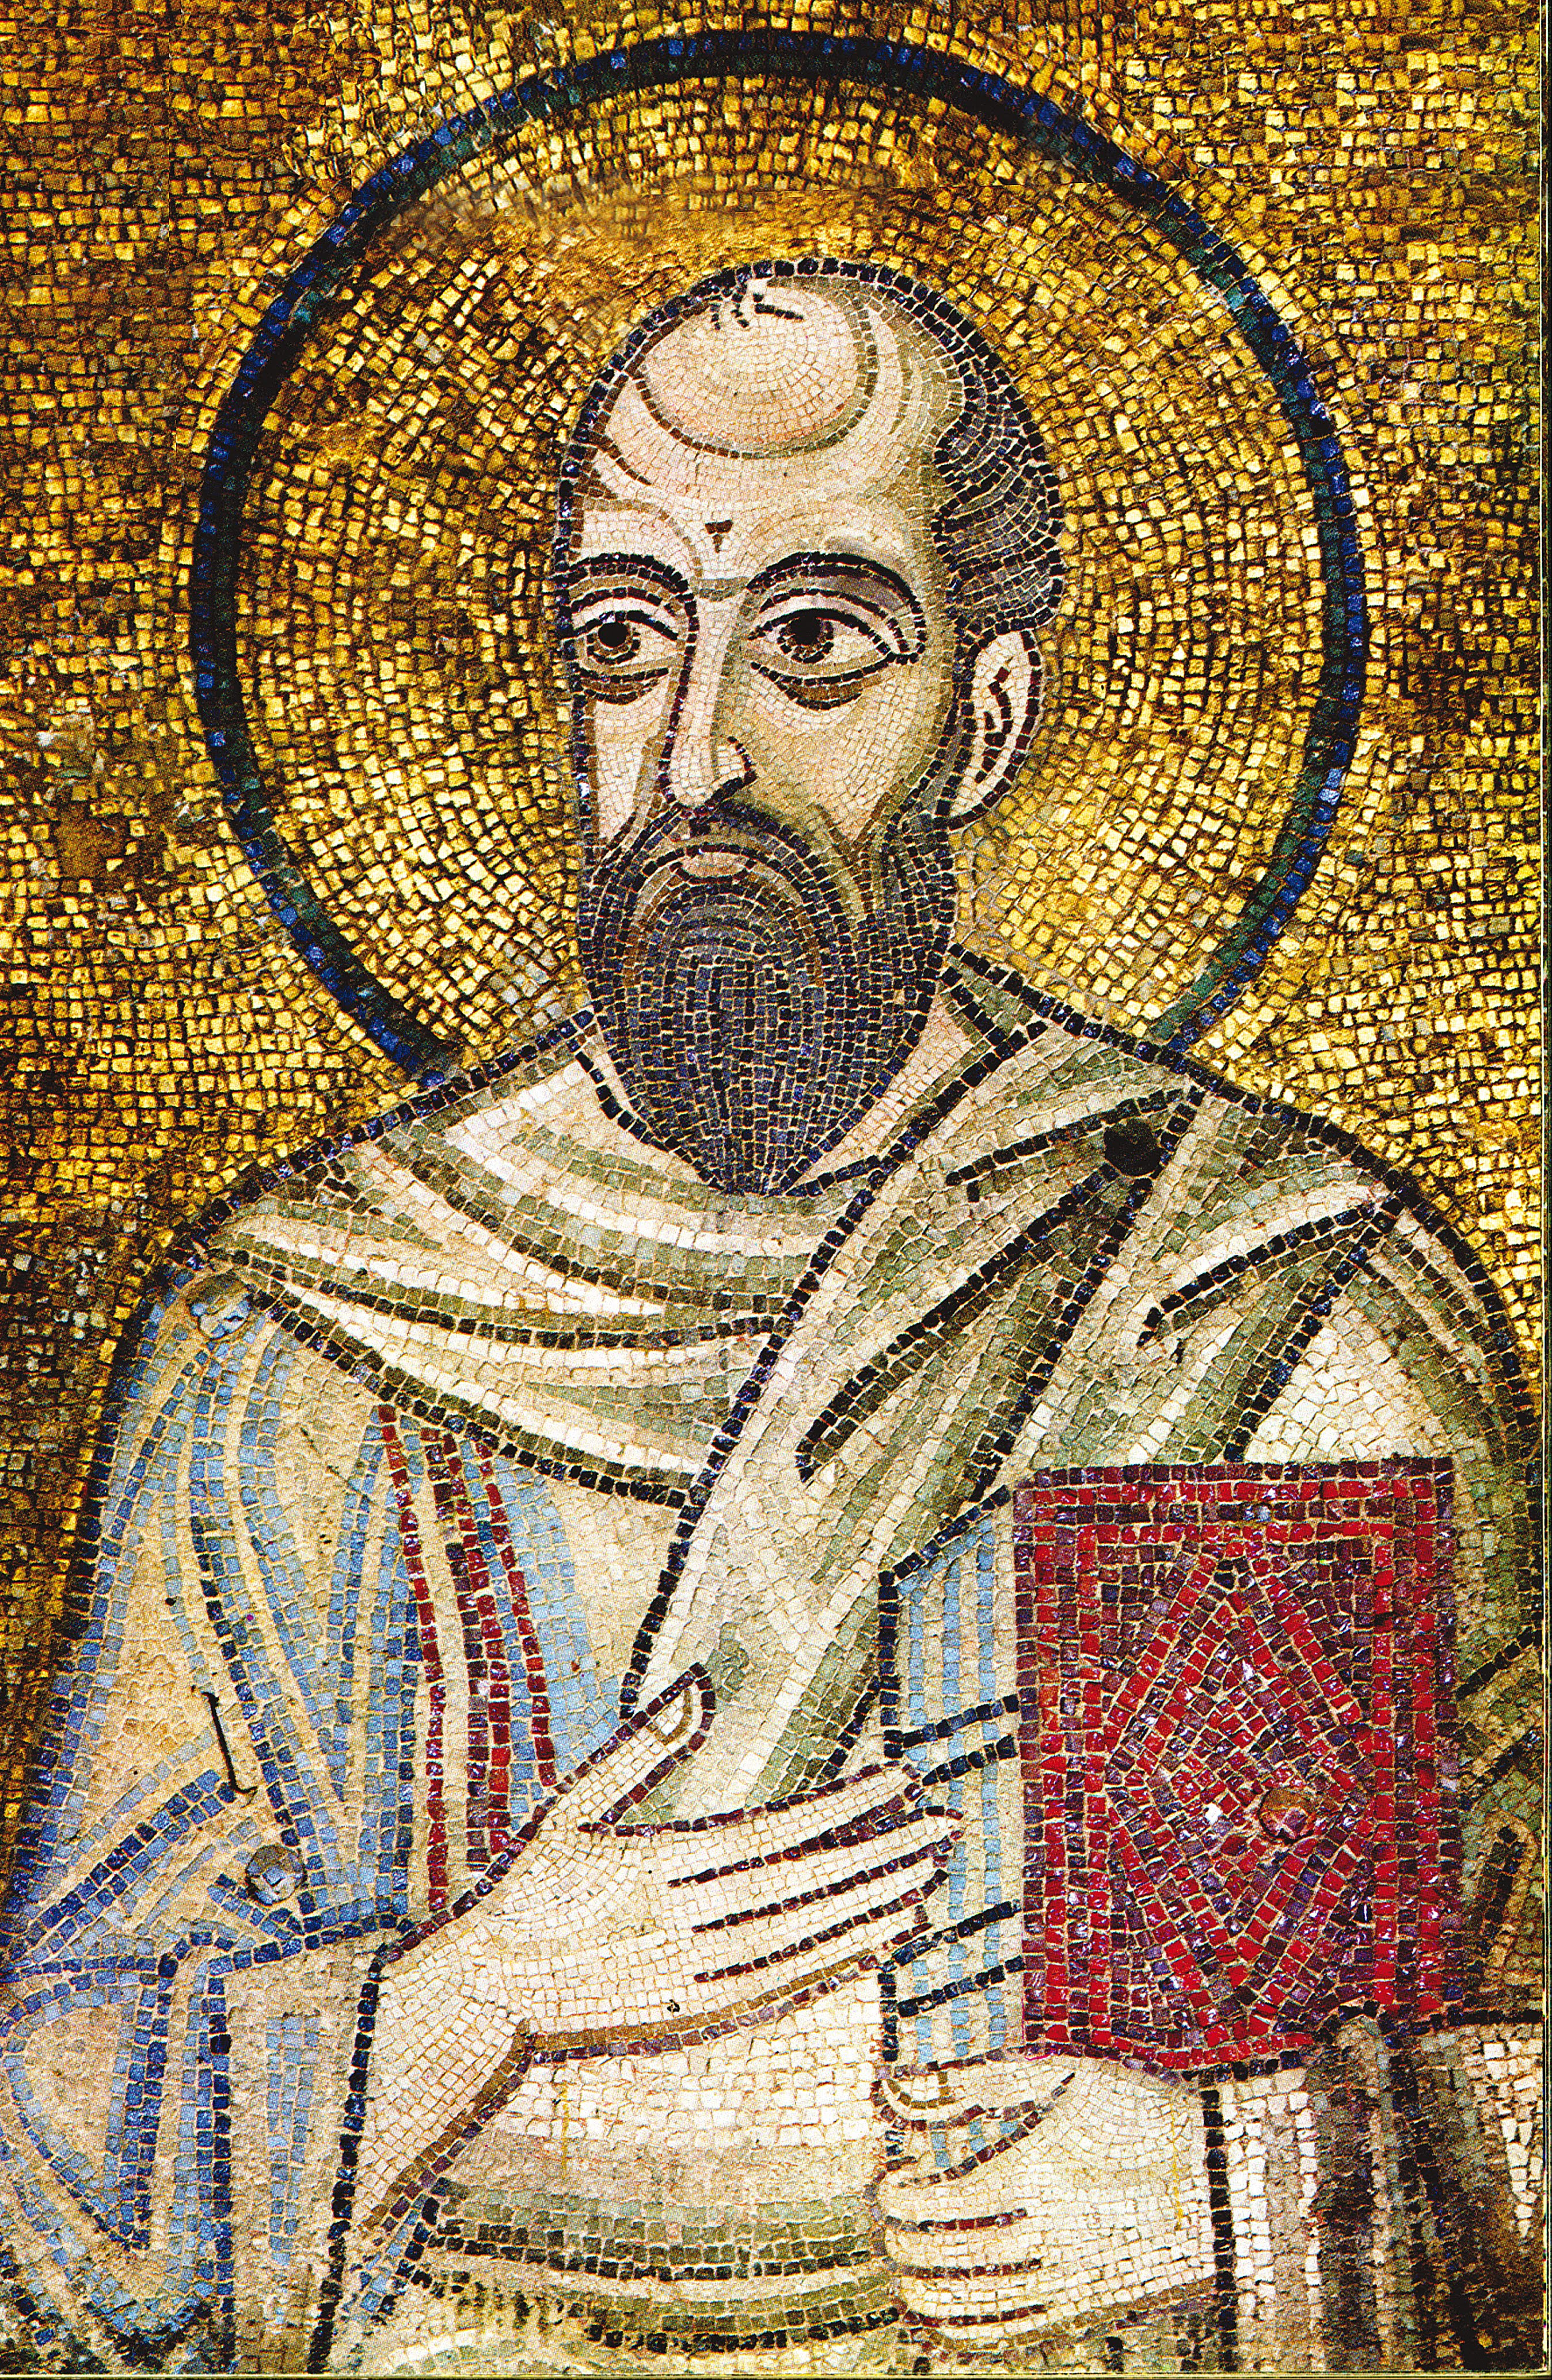 the apostle paul Define apostle apostle synonyms, apostle pronunciation, apostle translation, english dictionary definition of apostle n 1 a apostle one of a group made up.